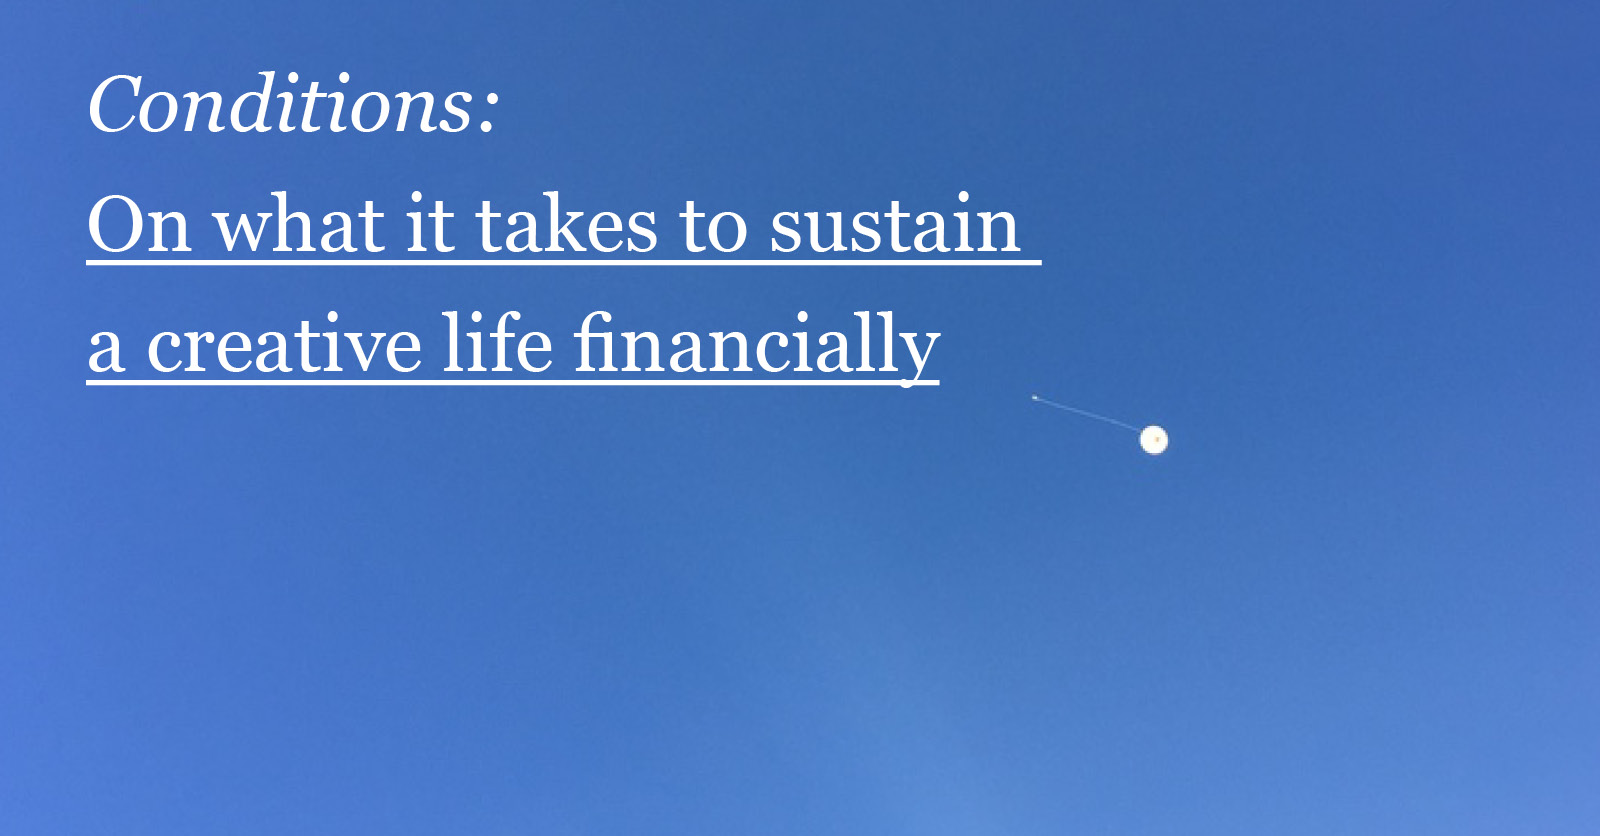 Conditions: On what it takes to sustain a creative life financially